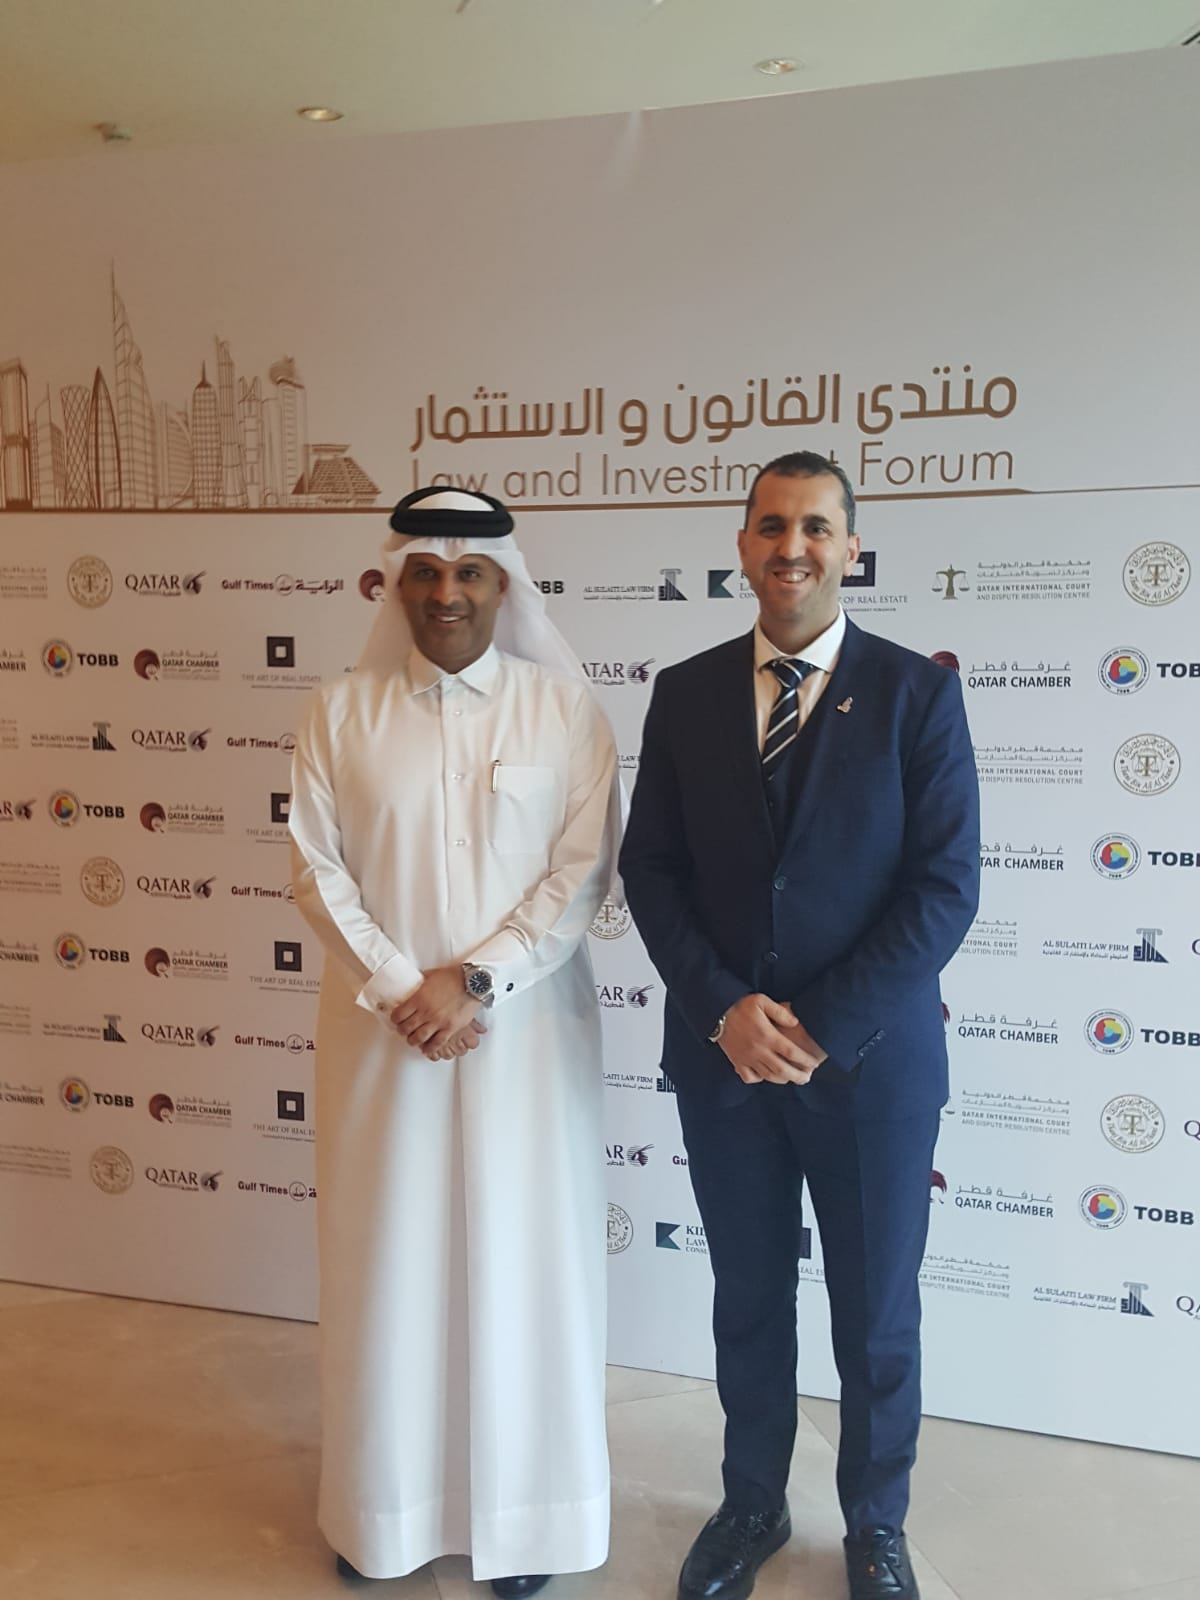 Imtilak Group representative with His Excellency Dr. Thani Bin Ali Al Thani